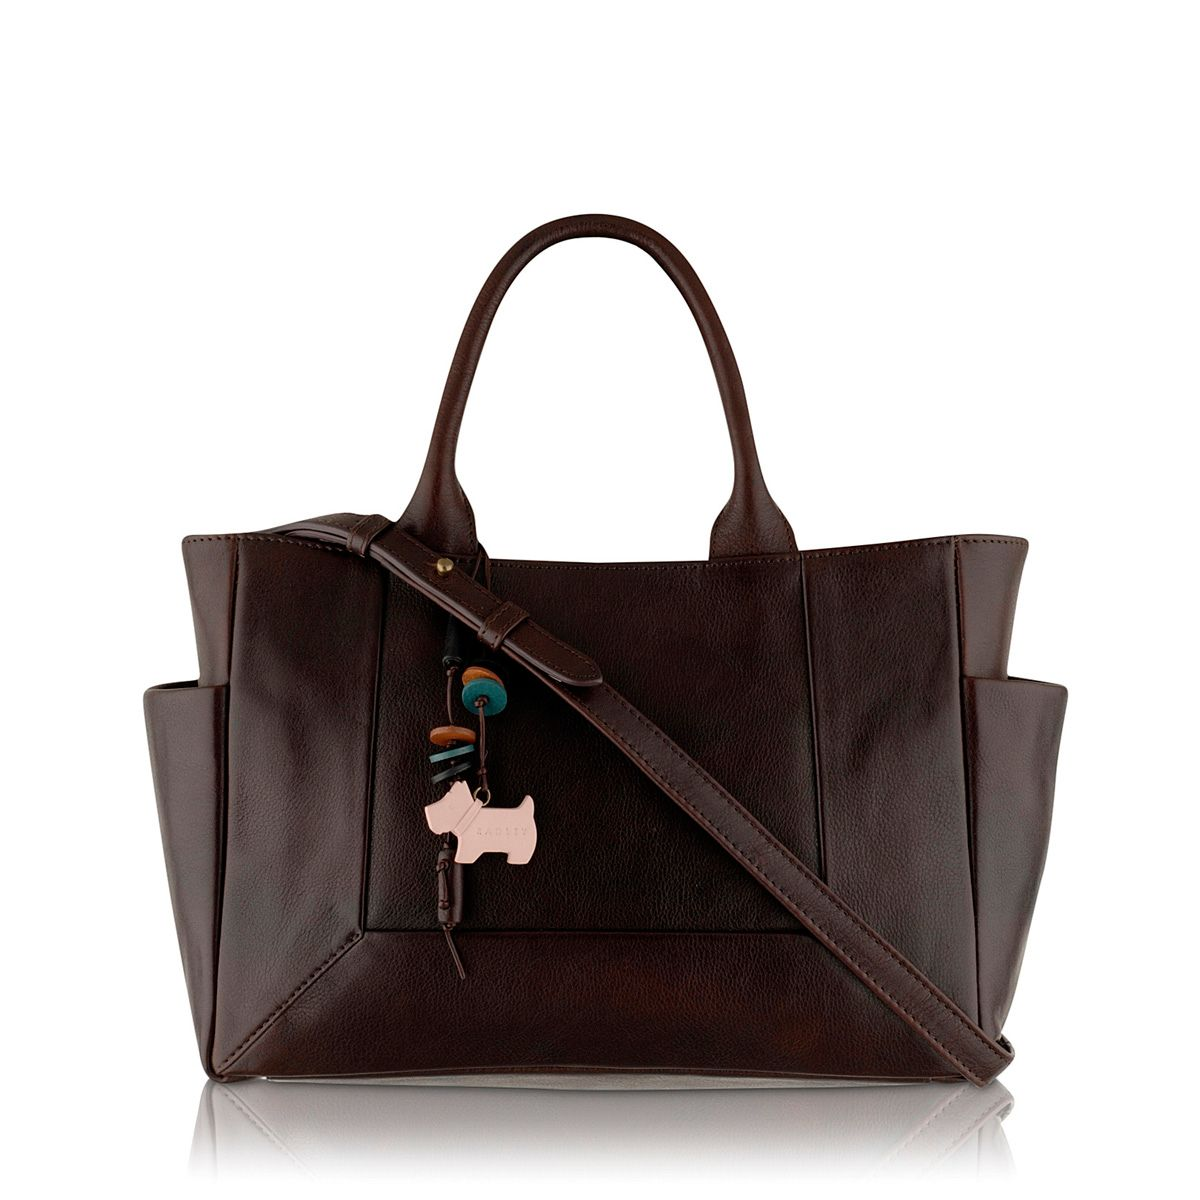 Border medium crossbody brown leather tote bag